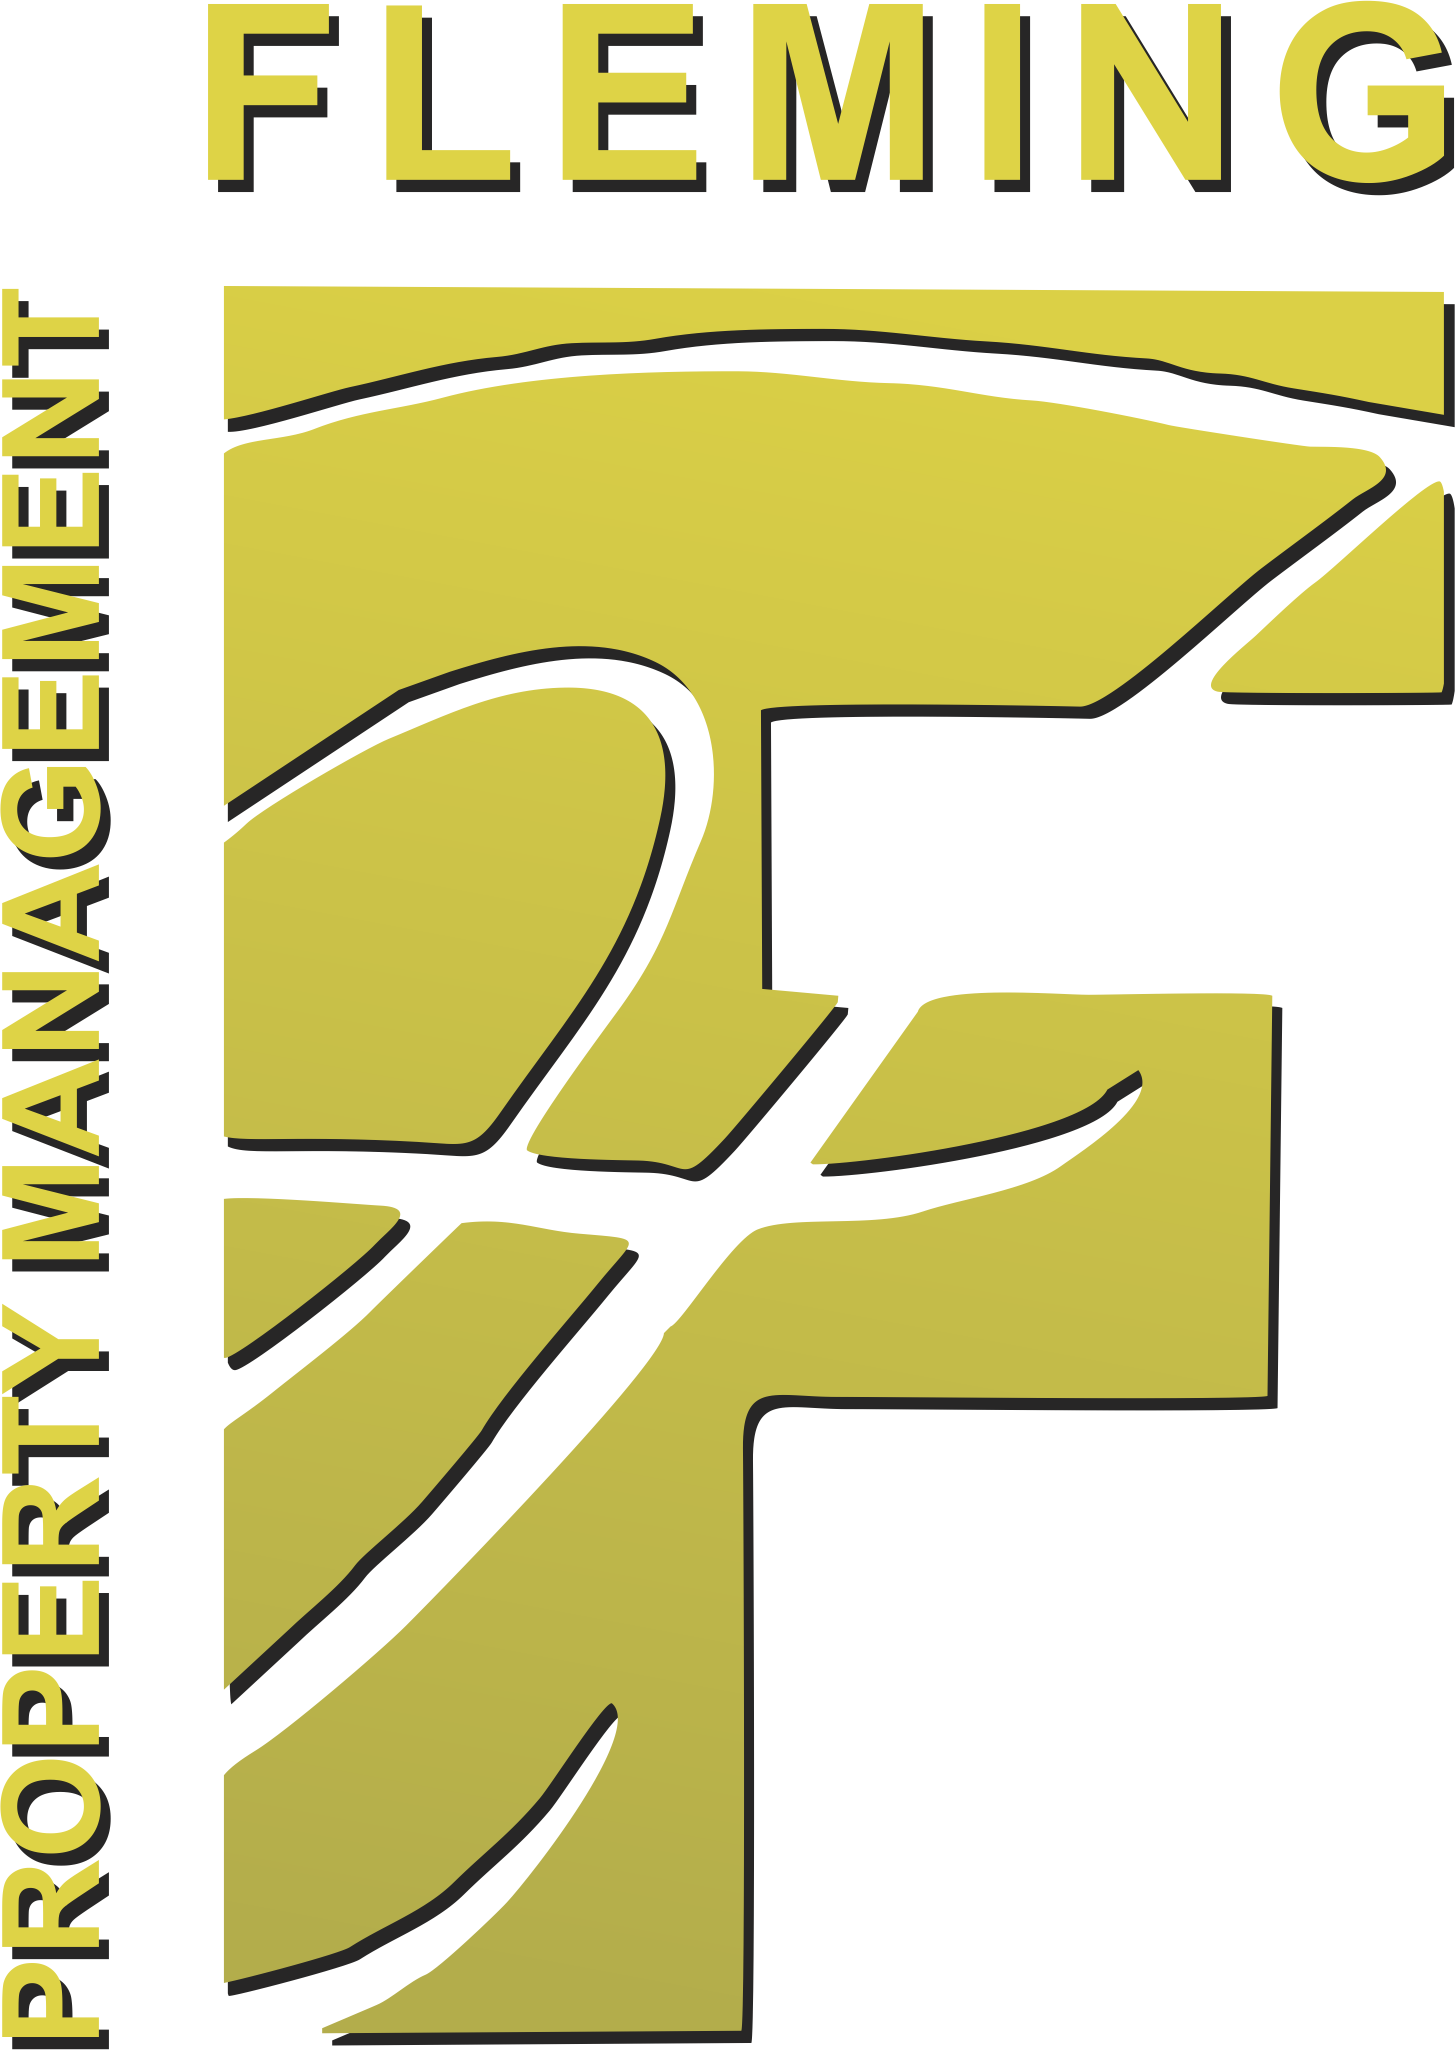 Fleming Property Management